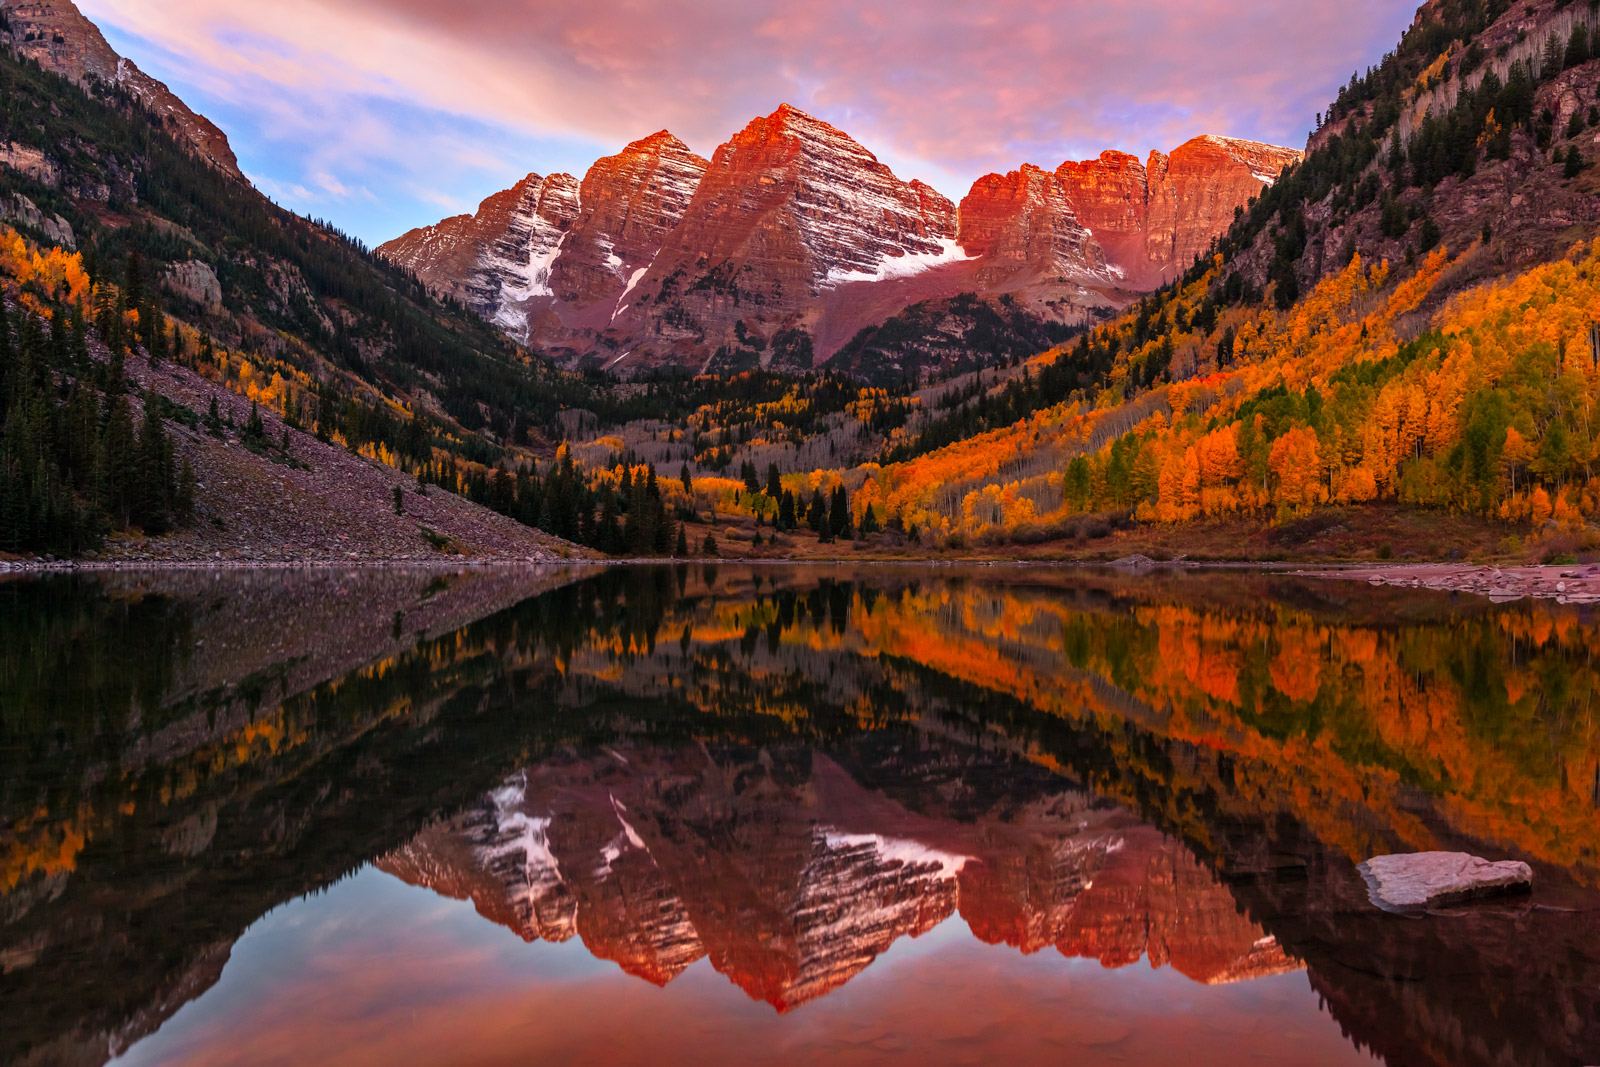 Colorado, Maroon Lake, Maroon Bells, Sunrise, Fall, Aspen, limited edition, photograph, fine art, landscape, fall color, photo